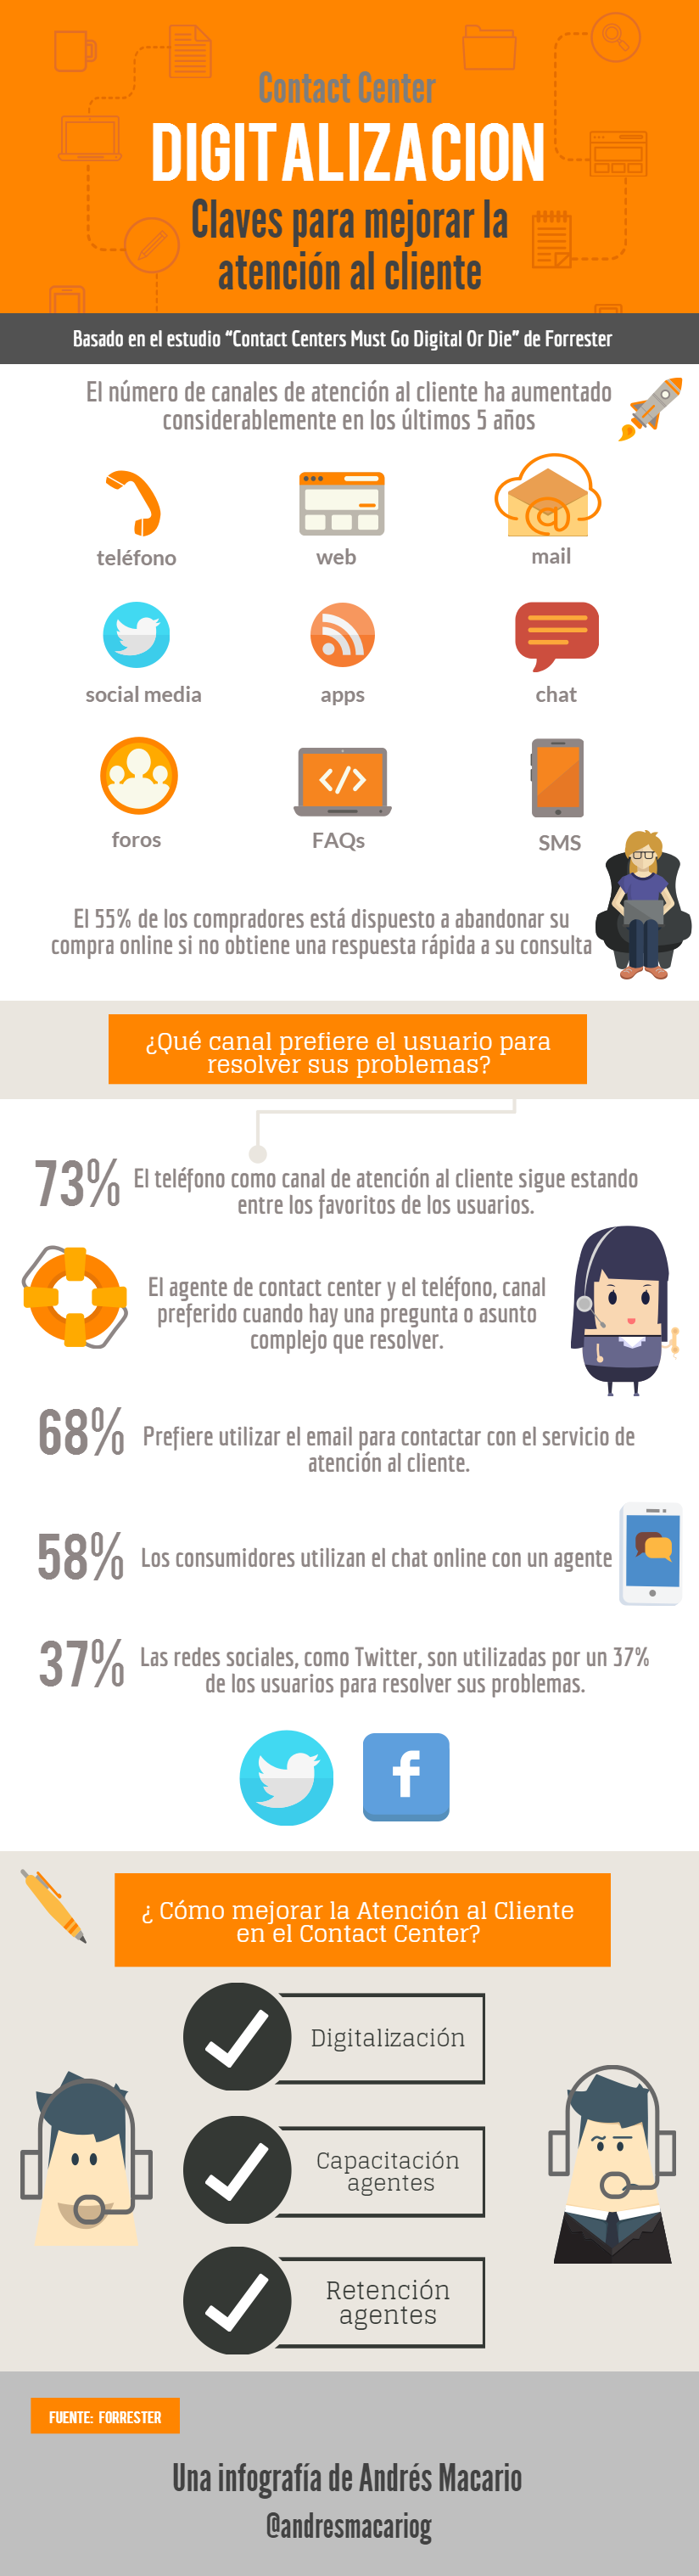 Digitalizacion claves atencion contact center-Infografia Andres Macario